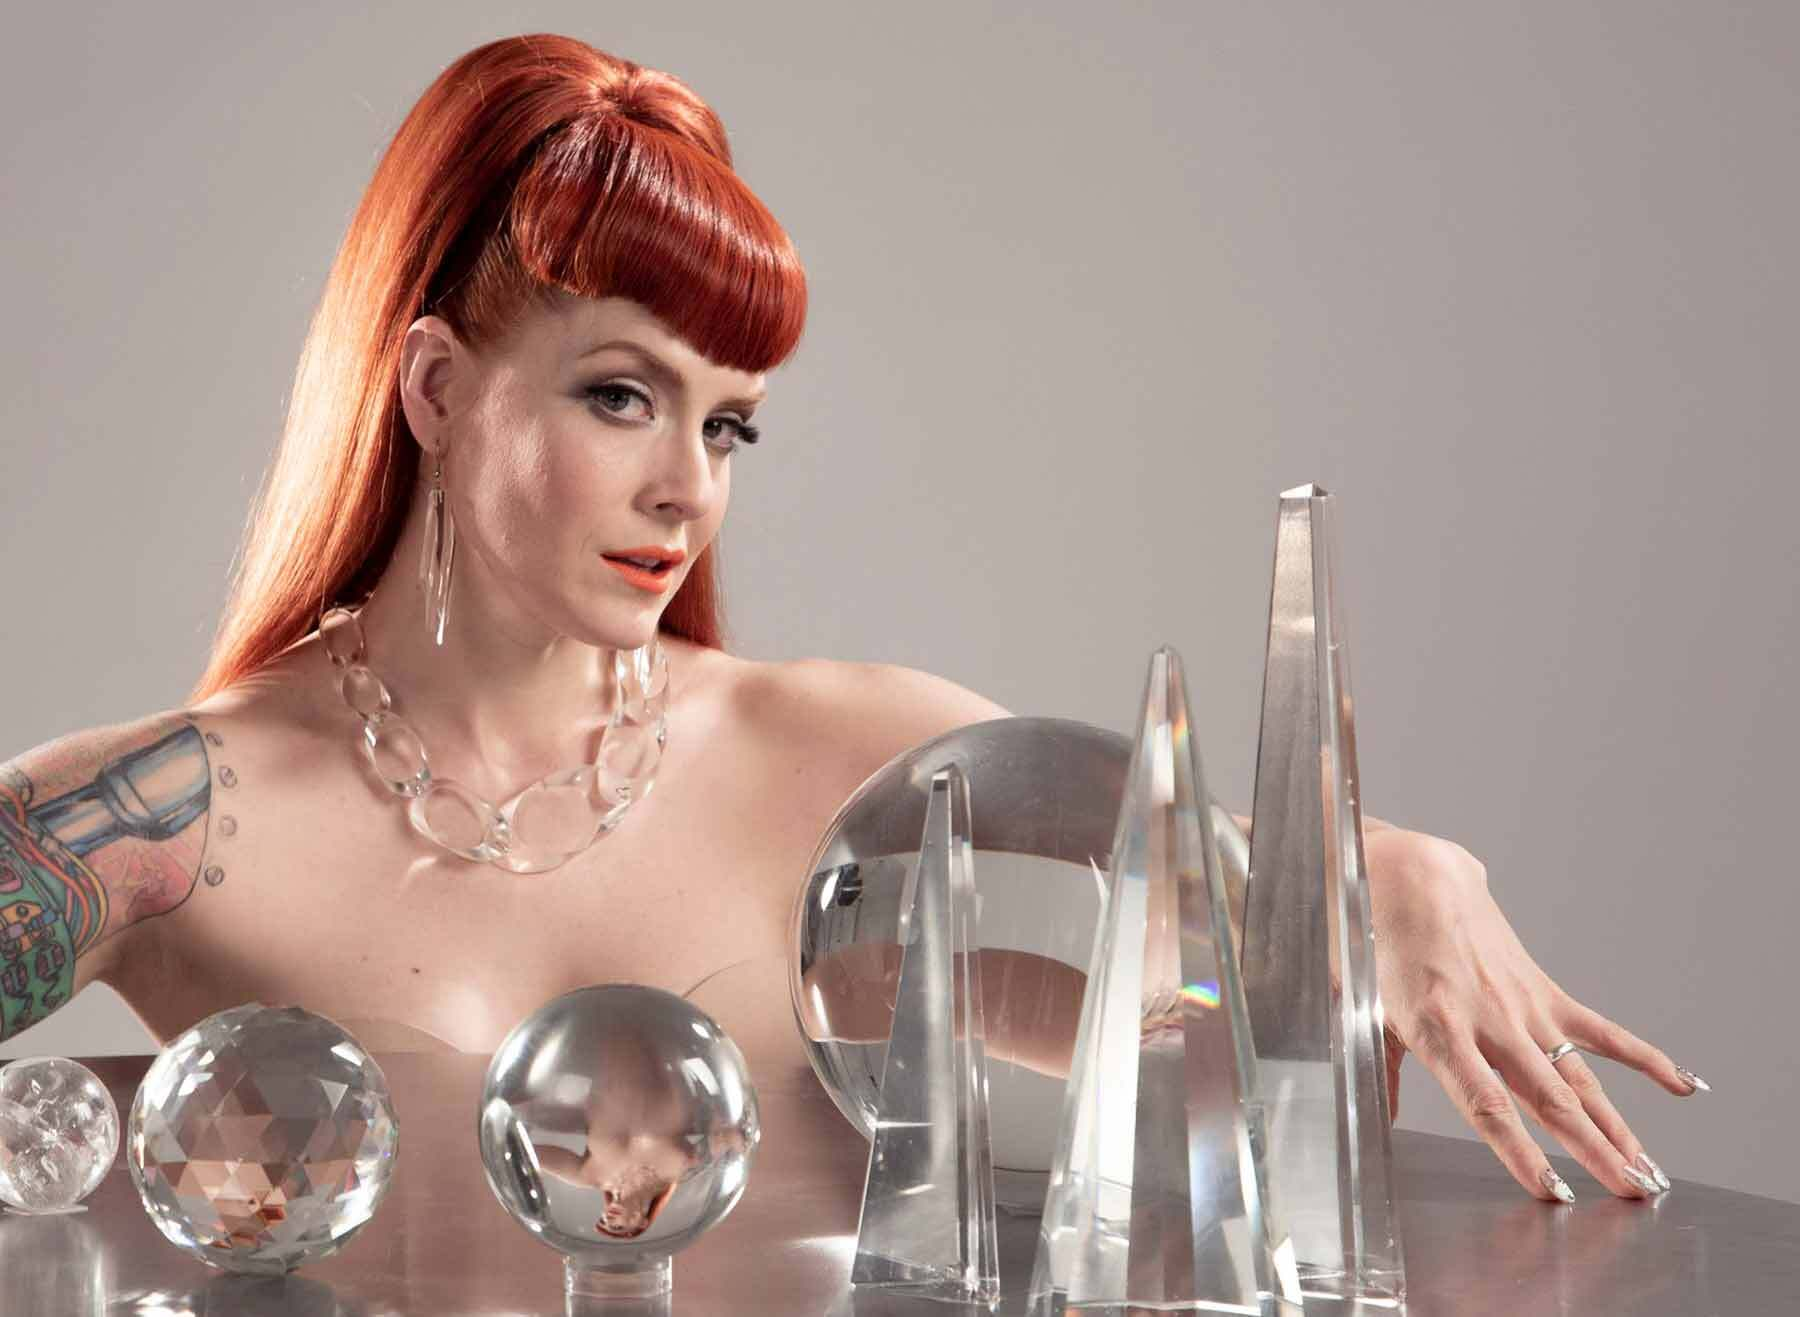 Ana Matronic, a red haired woman with her arm around glass balls and pyramids on a table.